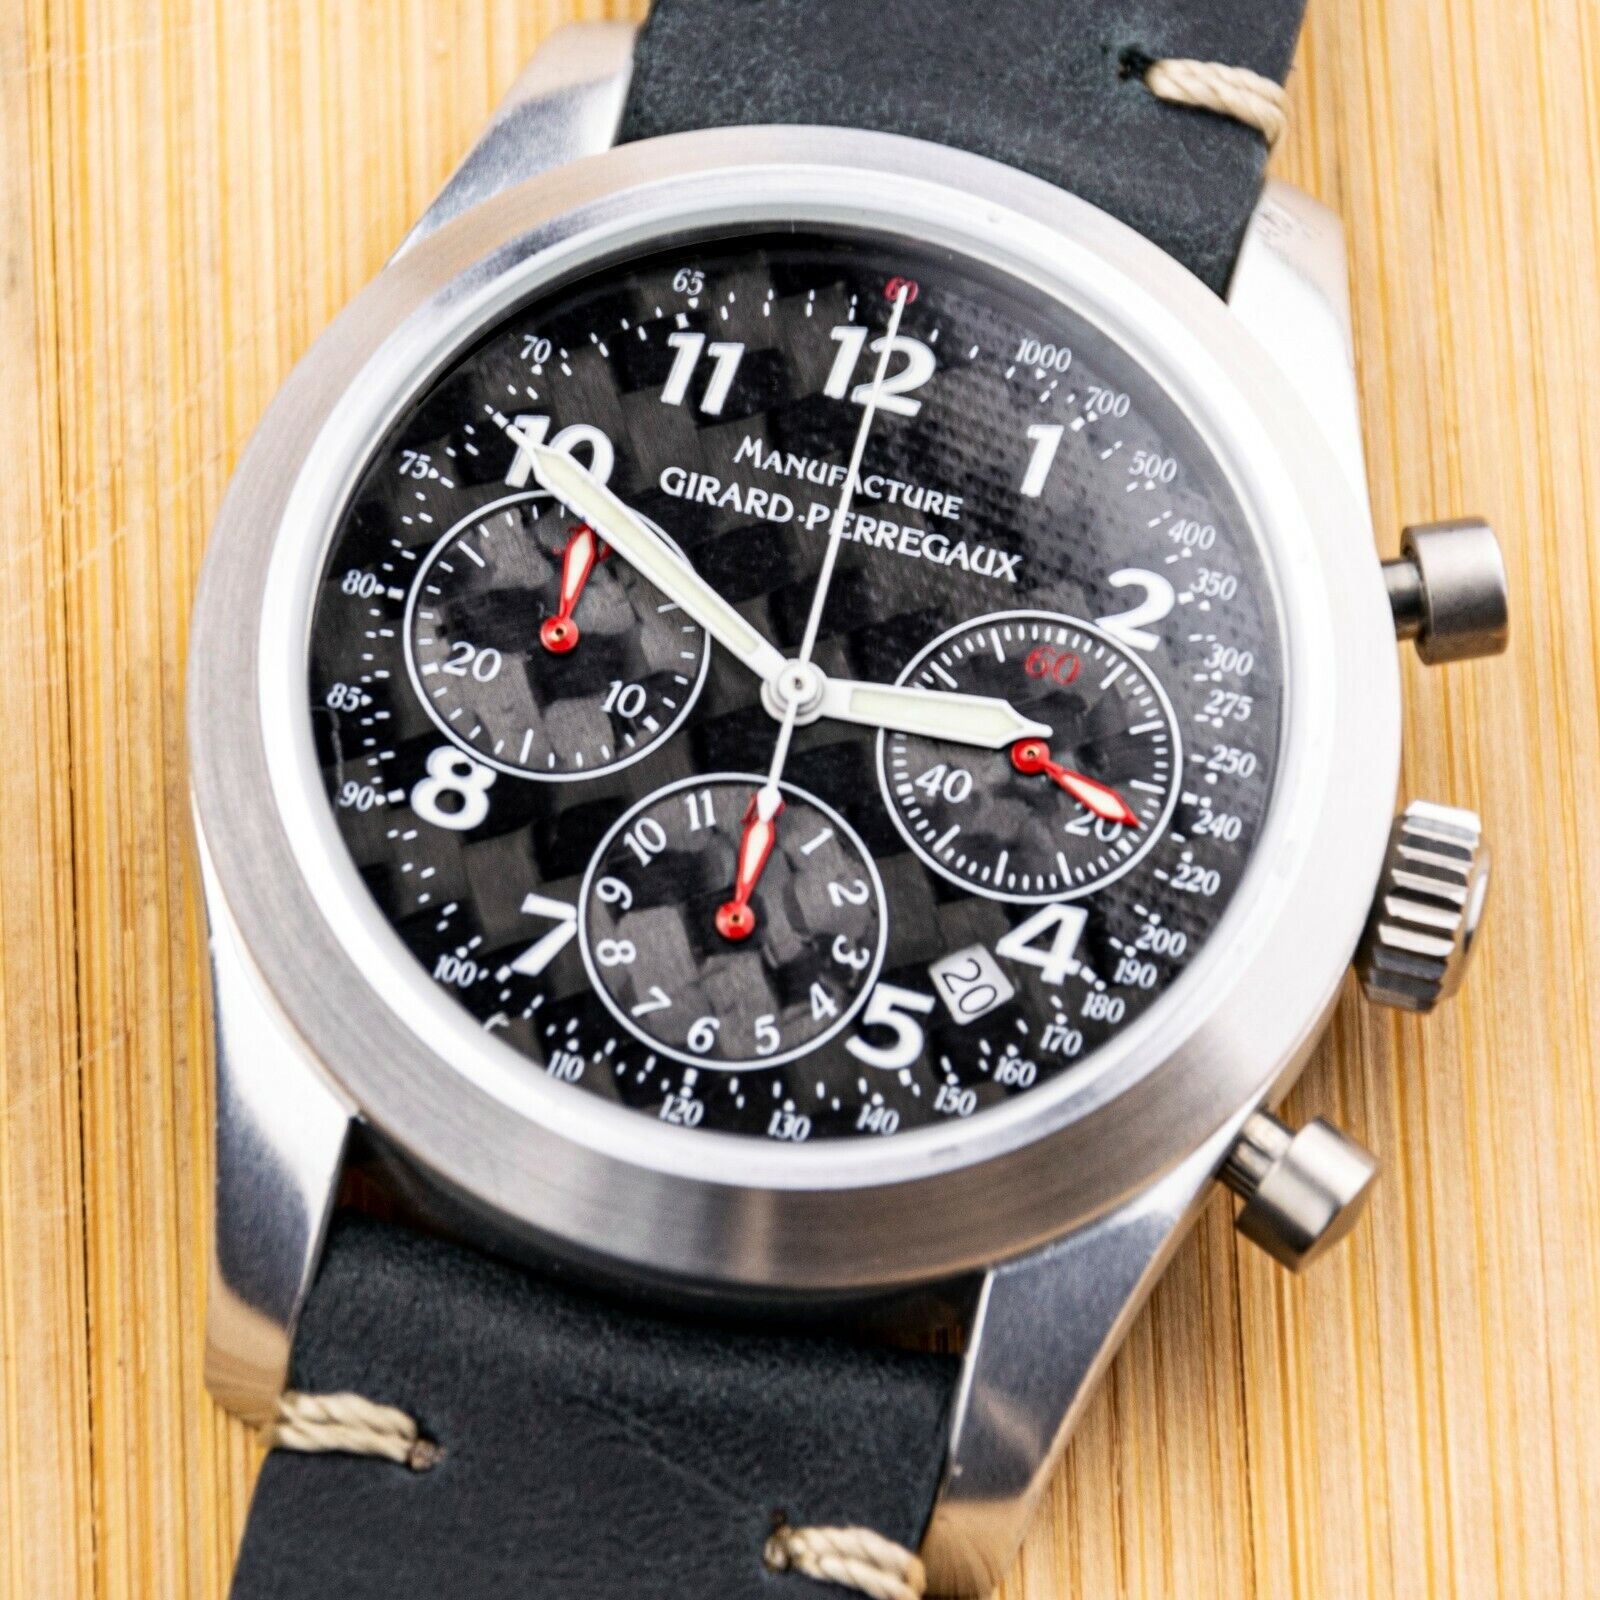 GIRARD-PERREGAUX – F1-047 – 4955 – AUTOMATIC CHRONOGRAPH – ALUMINIUM – 42 MM - watch picture 1